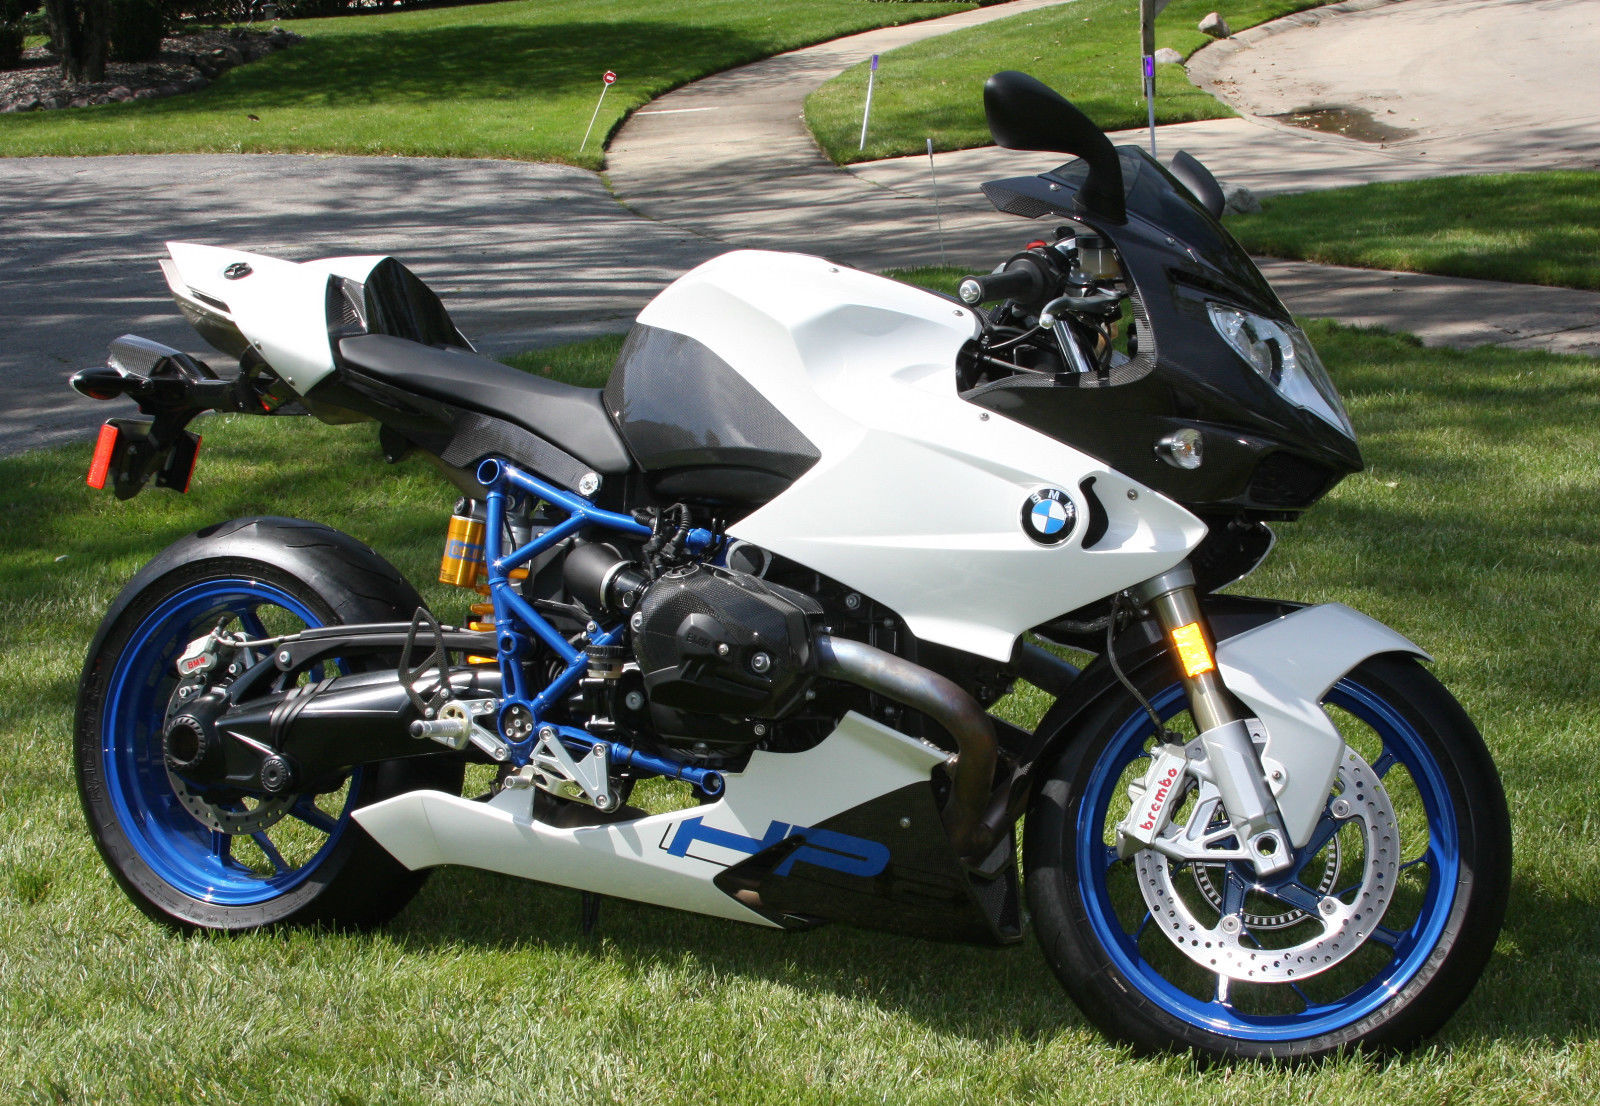 hp2 sport archives - page 2 of 3 - rare sportbikes for sale